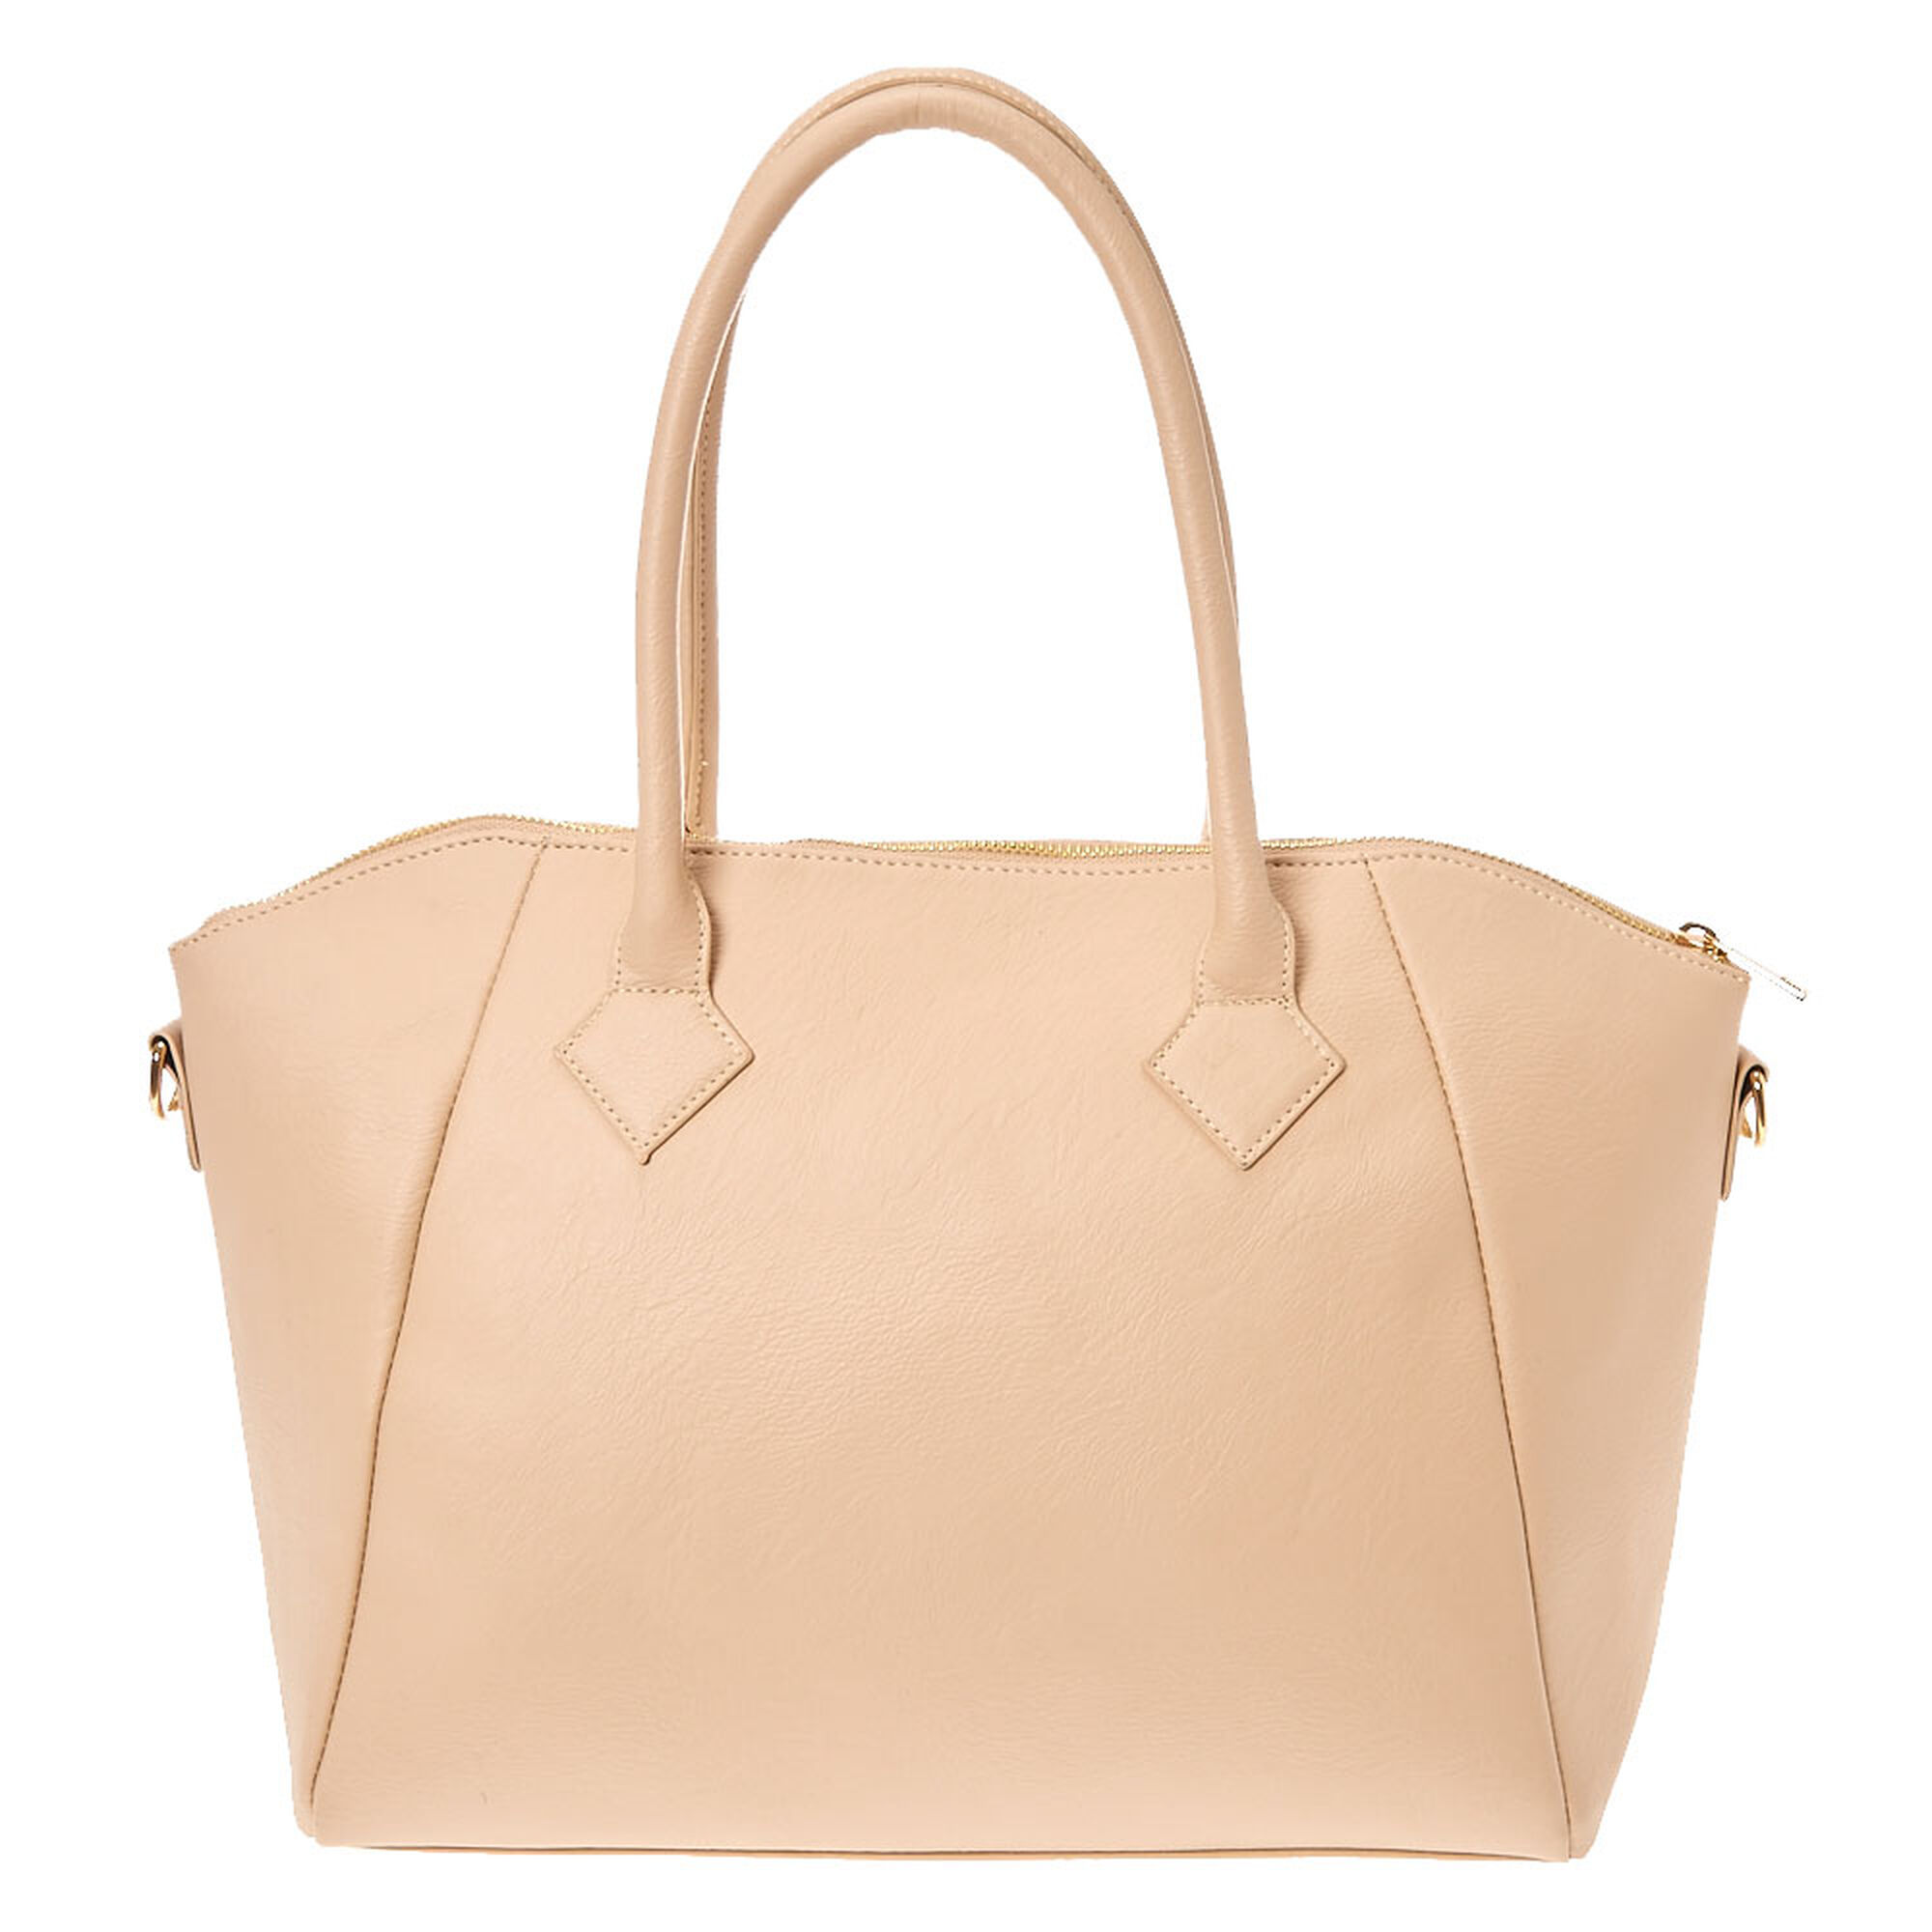 Tan Quilted Faux Leather Tote Bag